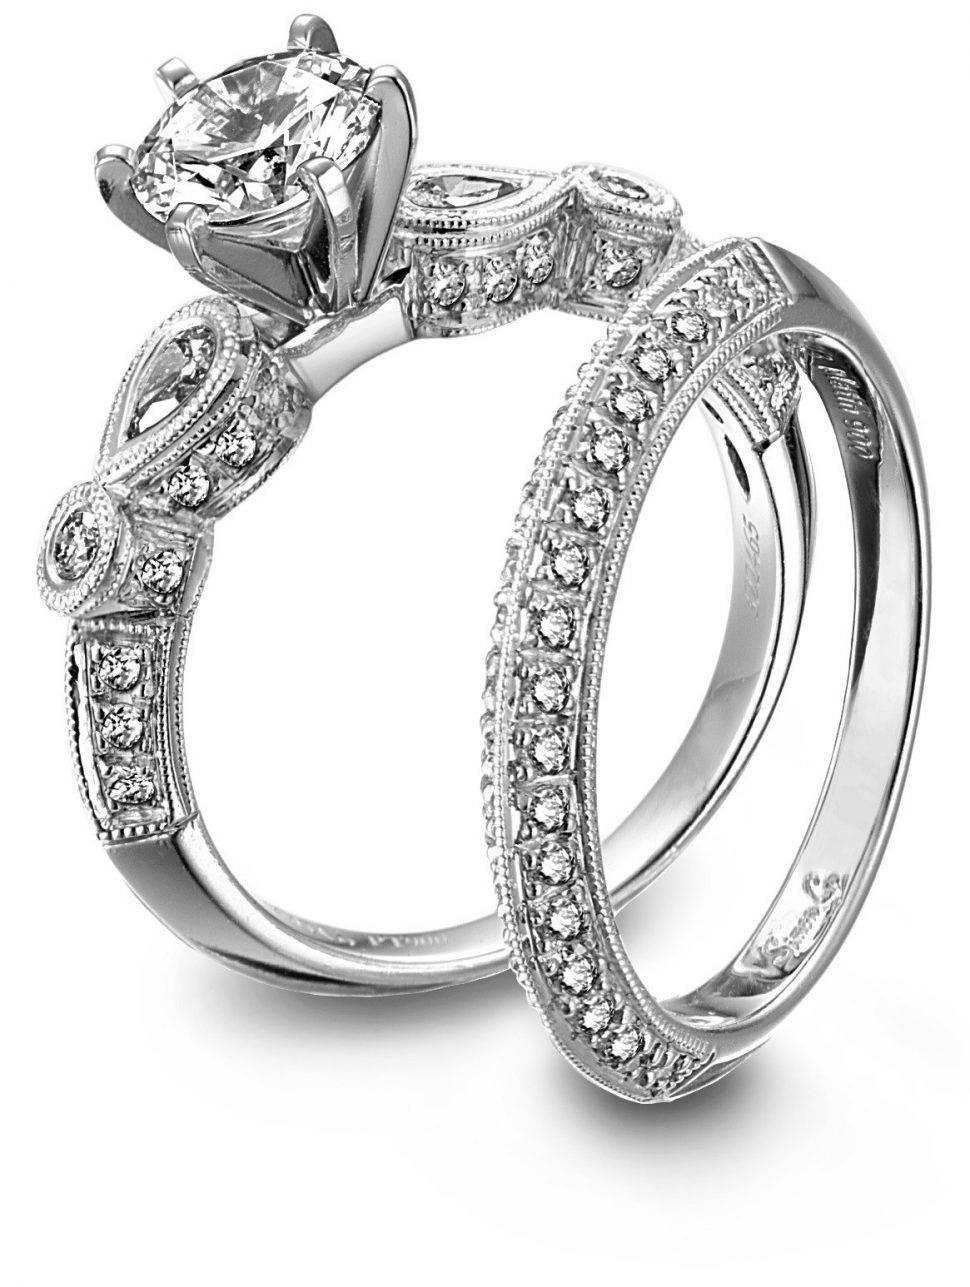 Wedding Rings : Promise Rings For Men Zales Amazing Zales Wedding Throughout Zales Engagement Rings For Men (View 11 of 15)